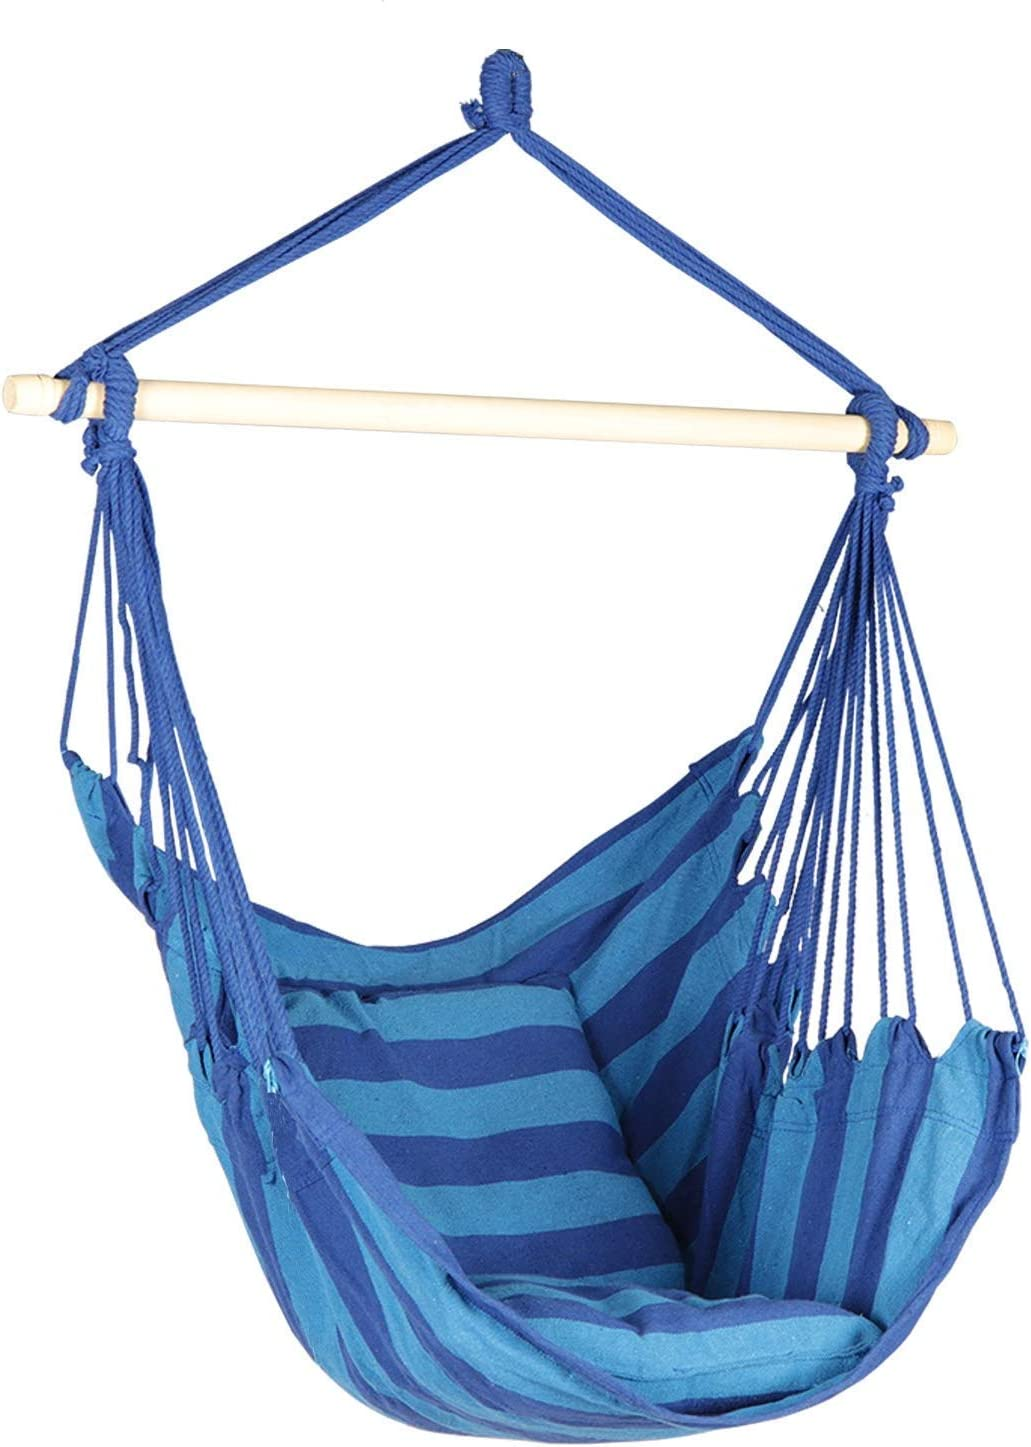 Bathonly Hanging Rope Hammock Chair, Hanging Swing Chair for Indoor and Outdoor- 2 Seat Cushions Included, Max.265 LBs Blue